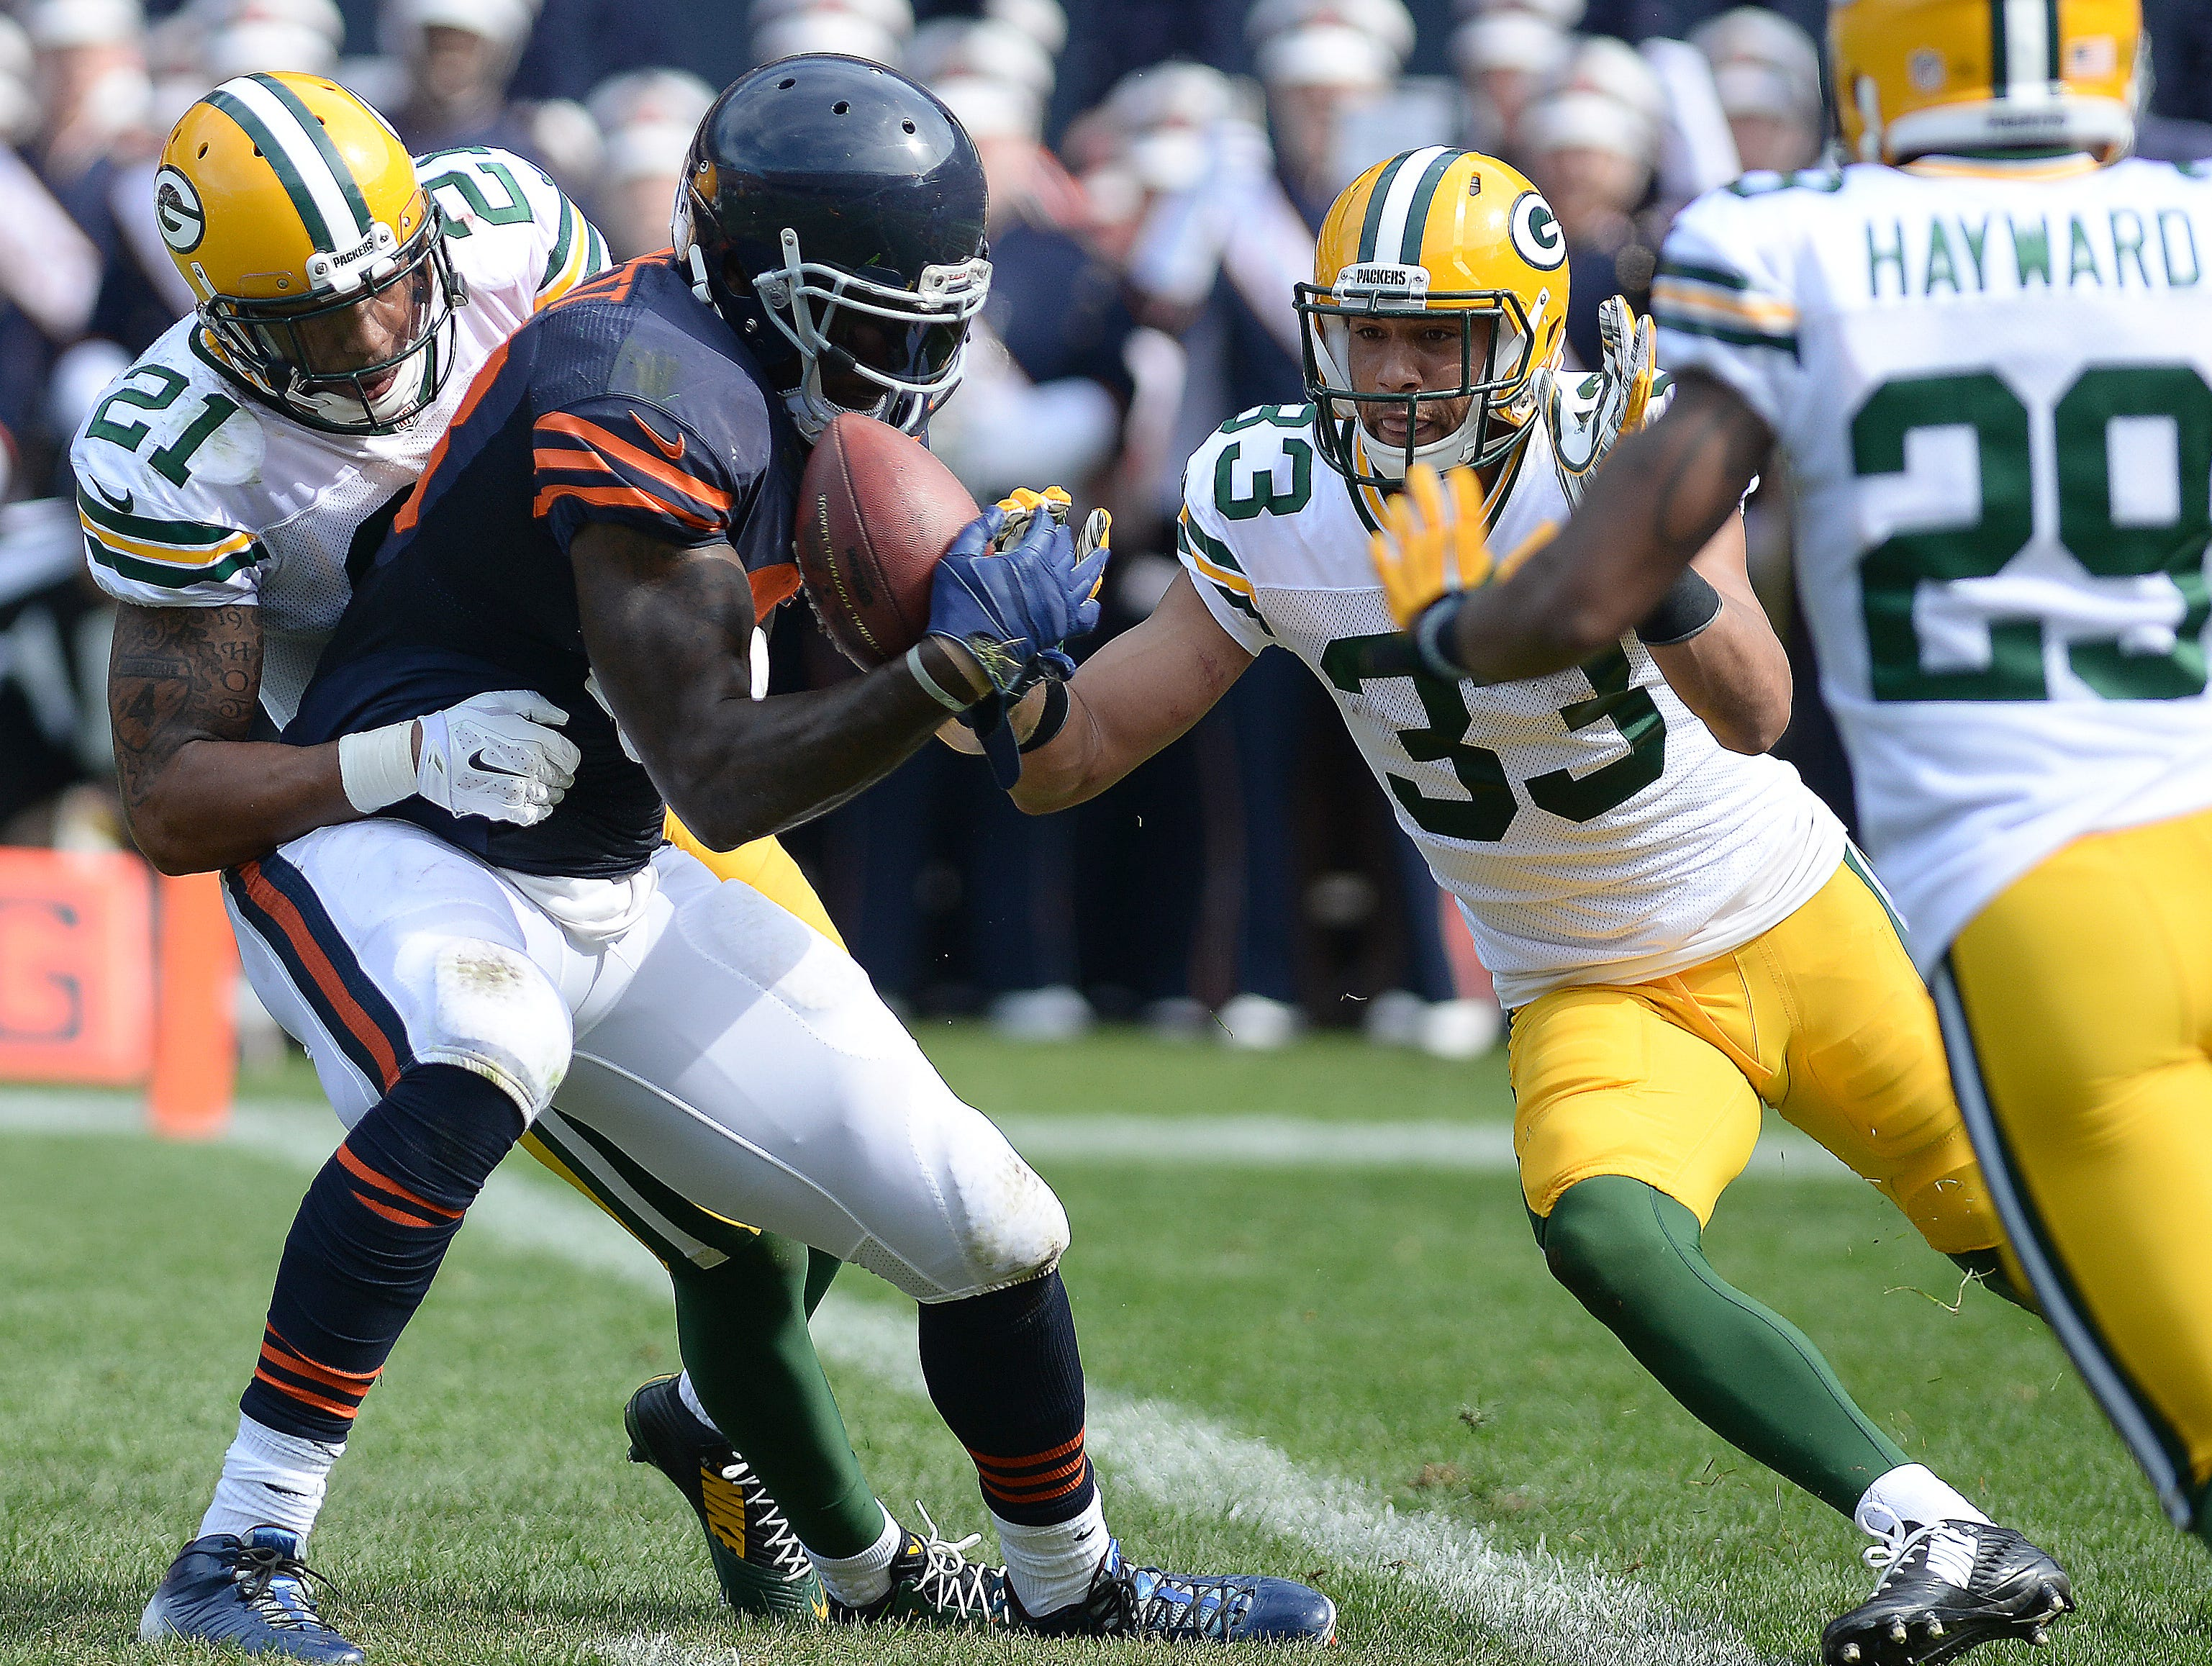 Green Bay Packers Ha Ha Clinton-Dix (21) and Micah Hyde (33) stop Martellus Bennett (88) at the goal line just before halftime against the Chicago Bears at Soldier Field September 28, 2014.  Jim Matthews/Press-Gazette Media/@jmatthe79